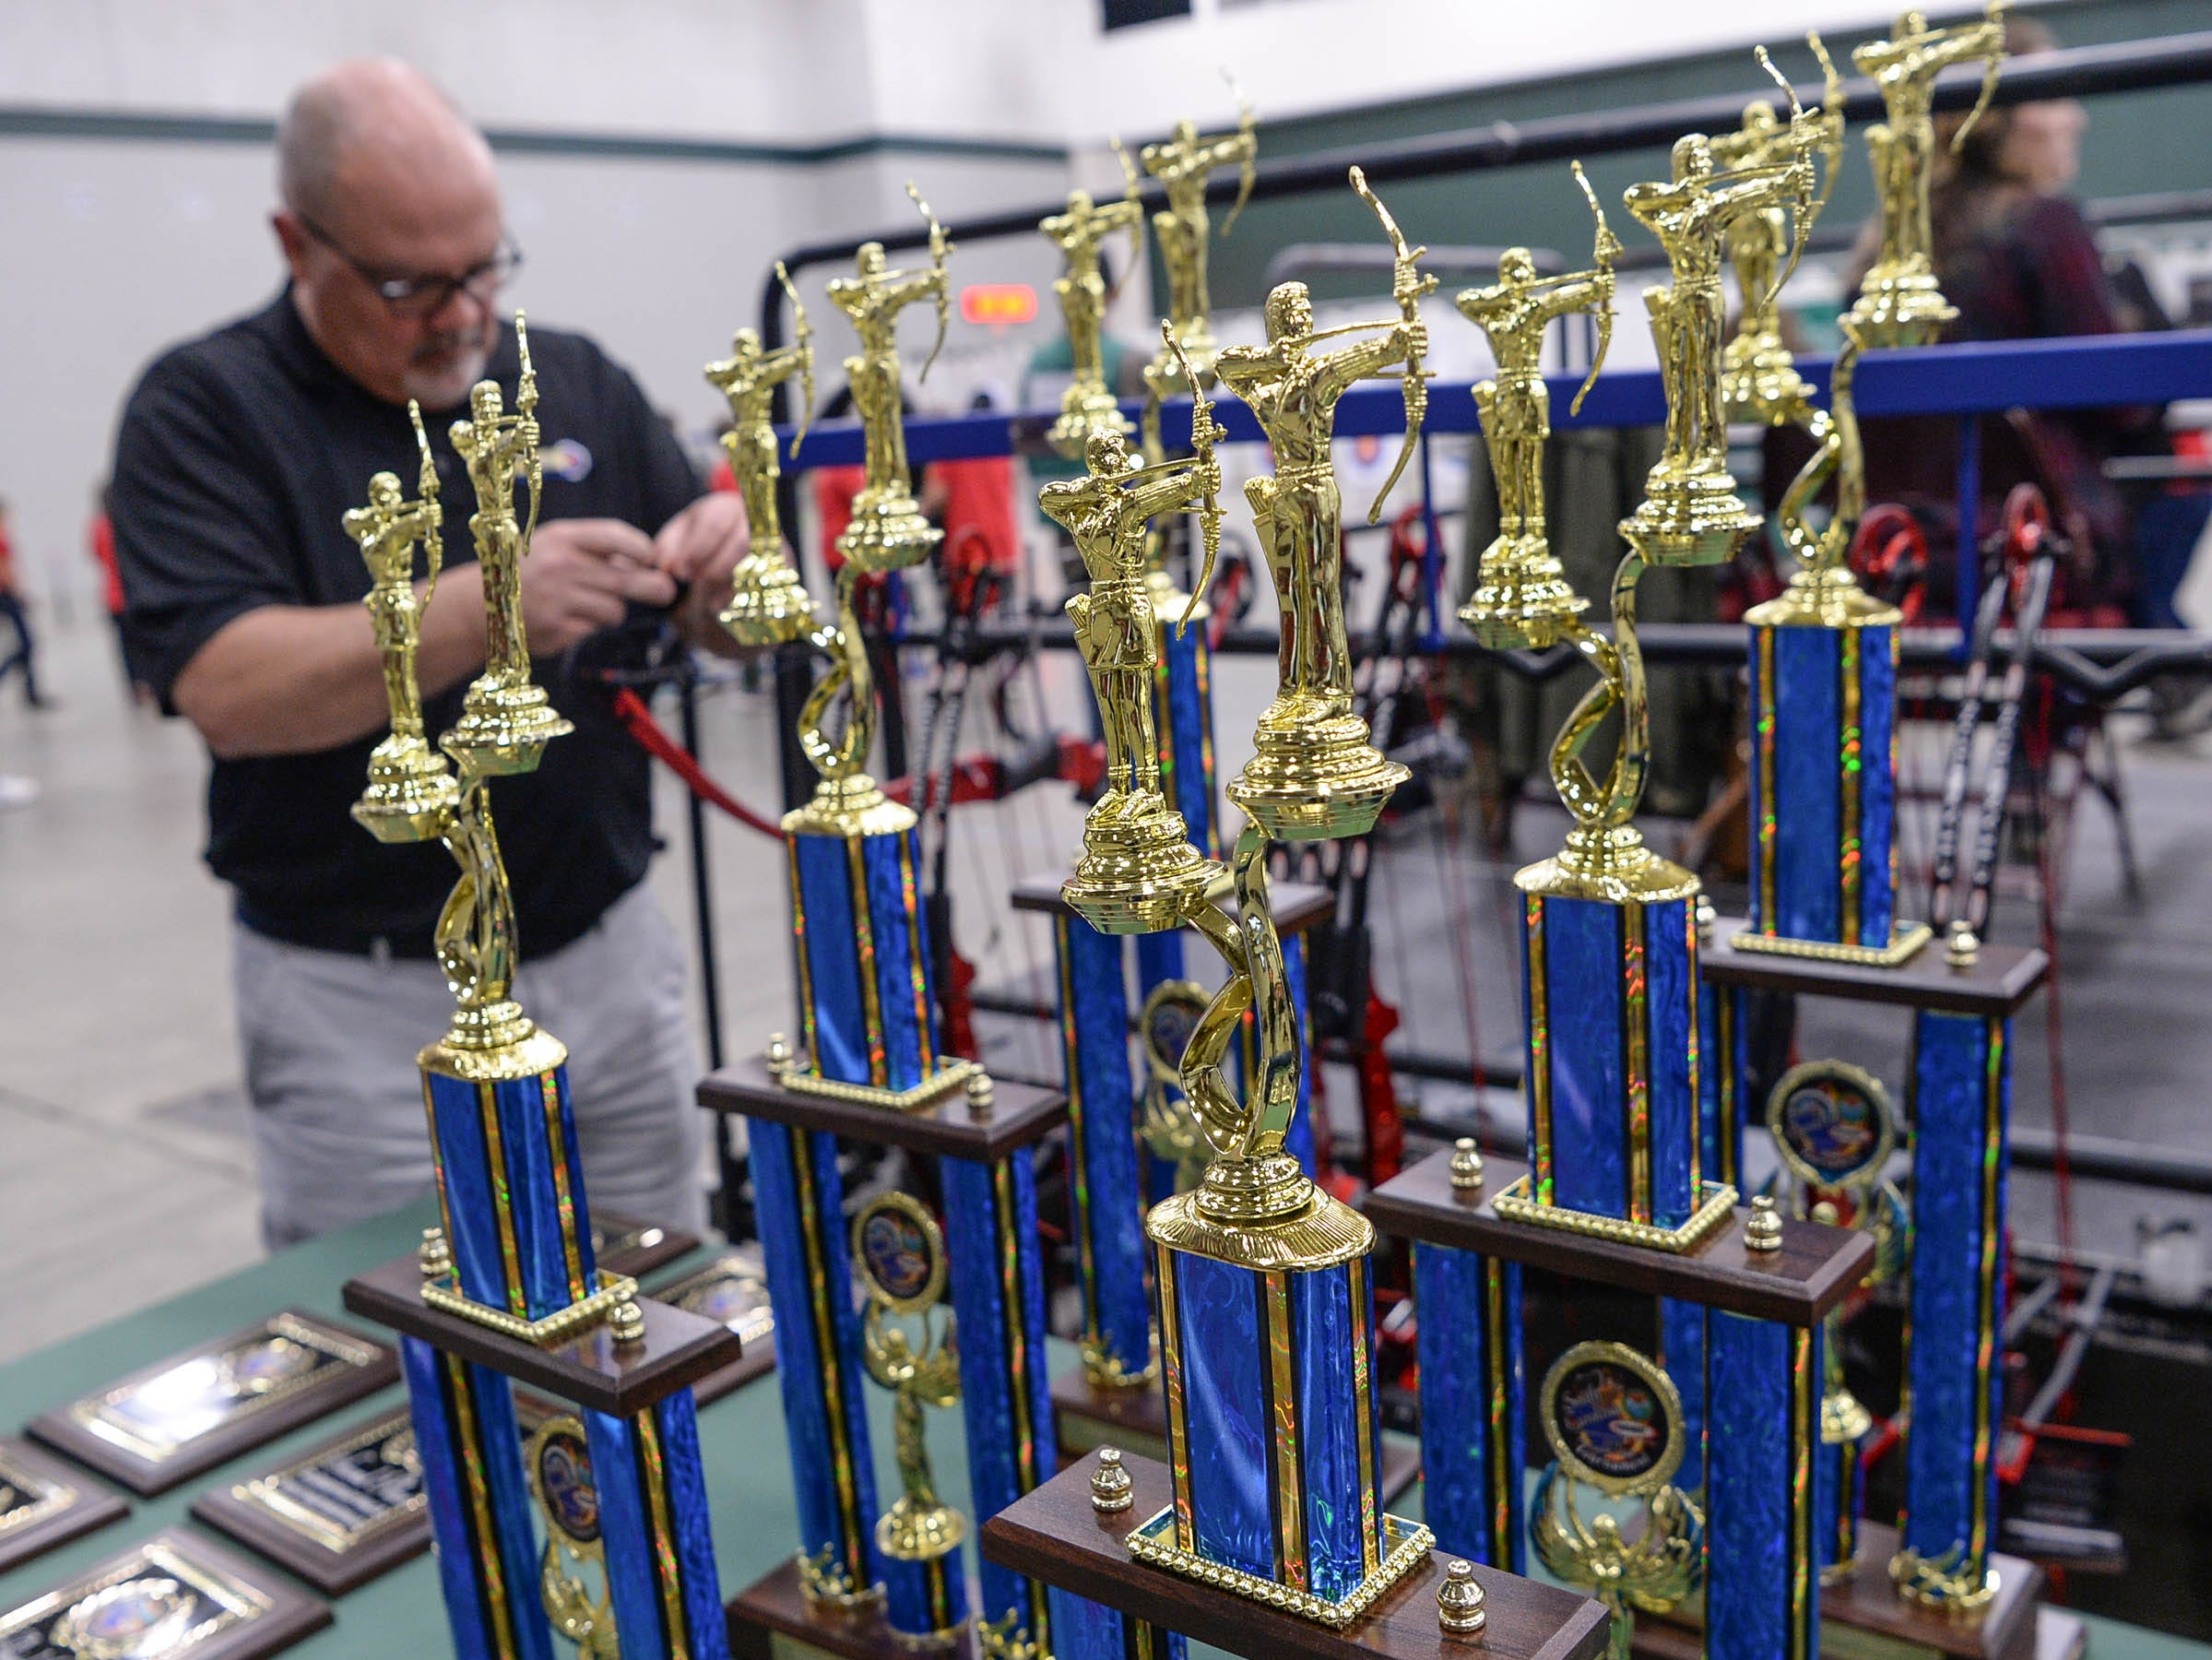 Trophies ready to be awarded during the South Carolina Department of Natural Resources regional National Archery in the Schools Program (NASP) regional competition at the Anderson Civic Center Wednesday.